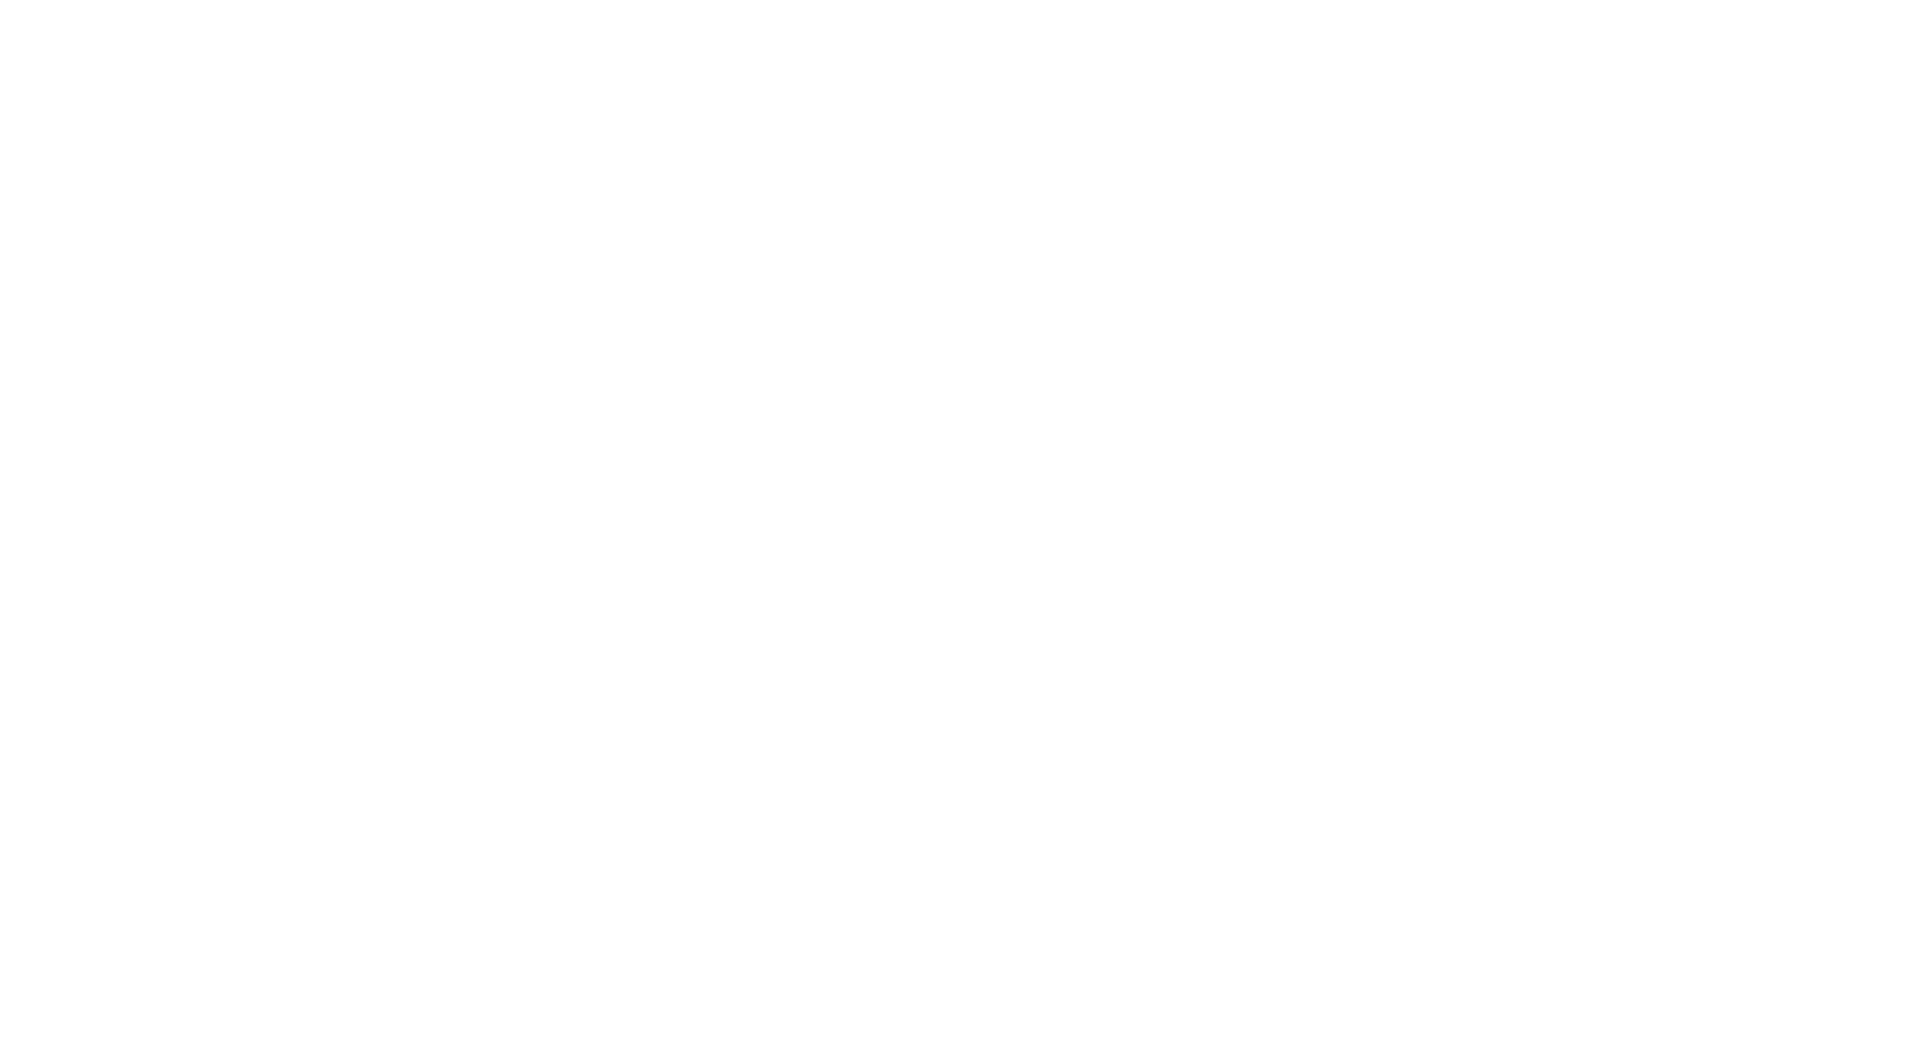 overlay-shape%402x.png